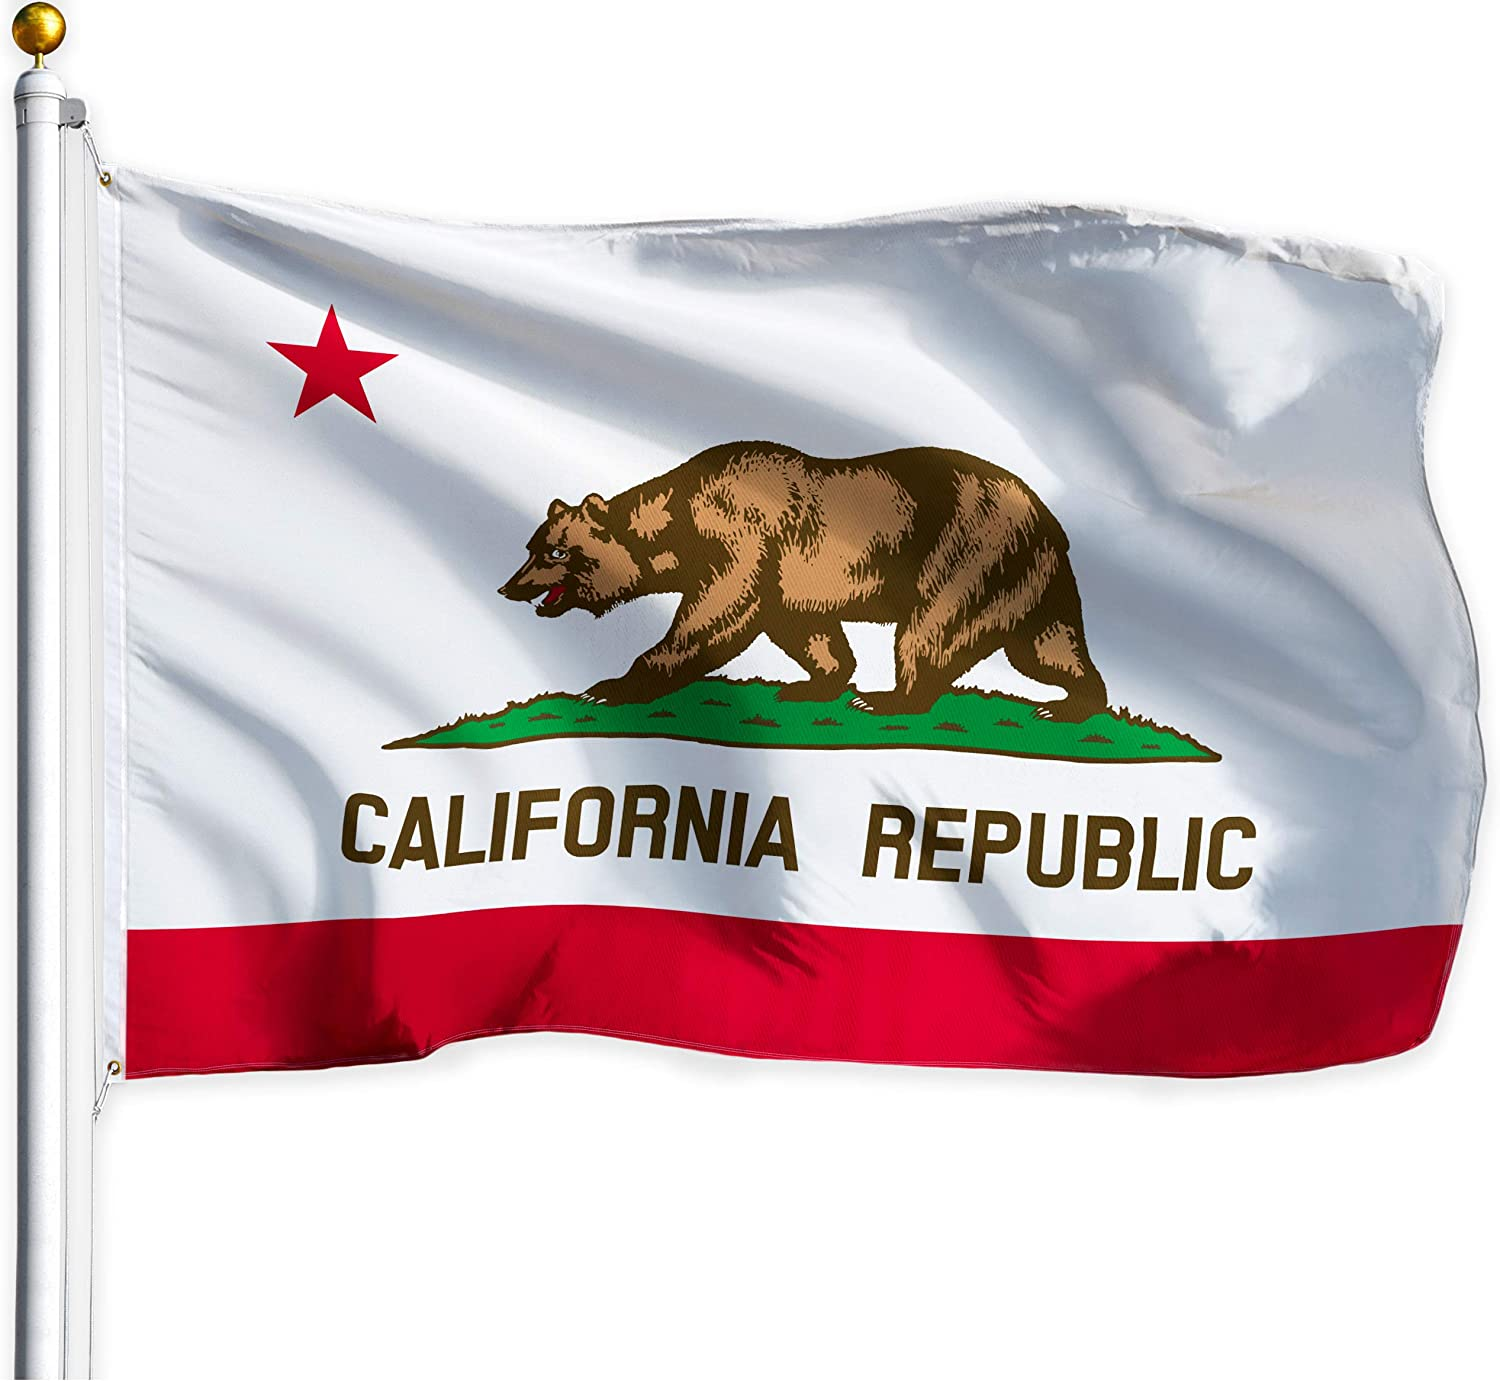 G128 – California State Flag | 3x5 feet | Printed – Vibrant Colors, Brass Grommets, Quality Polyester